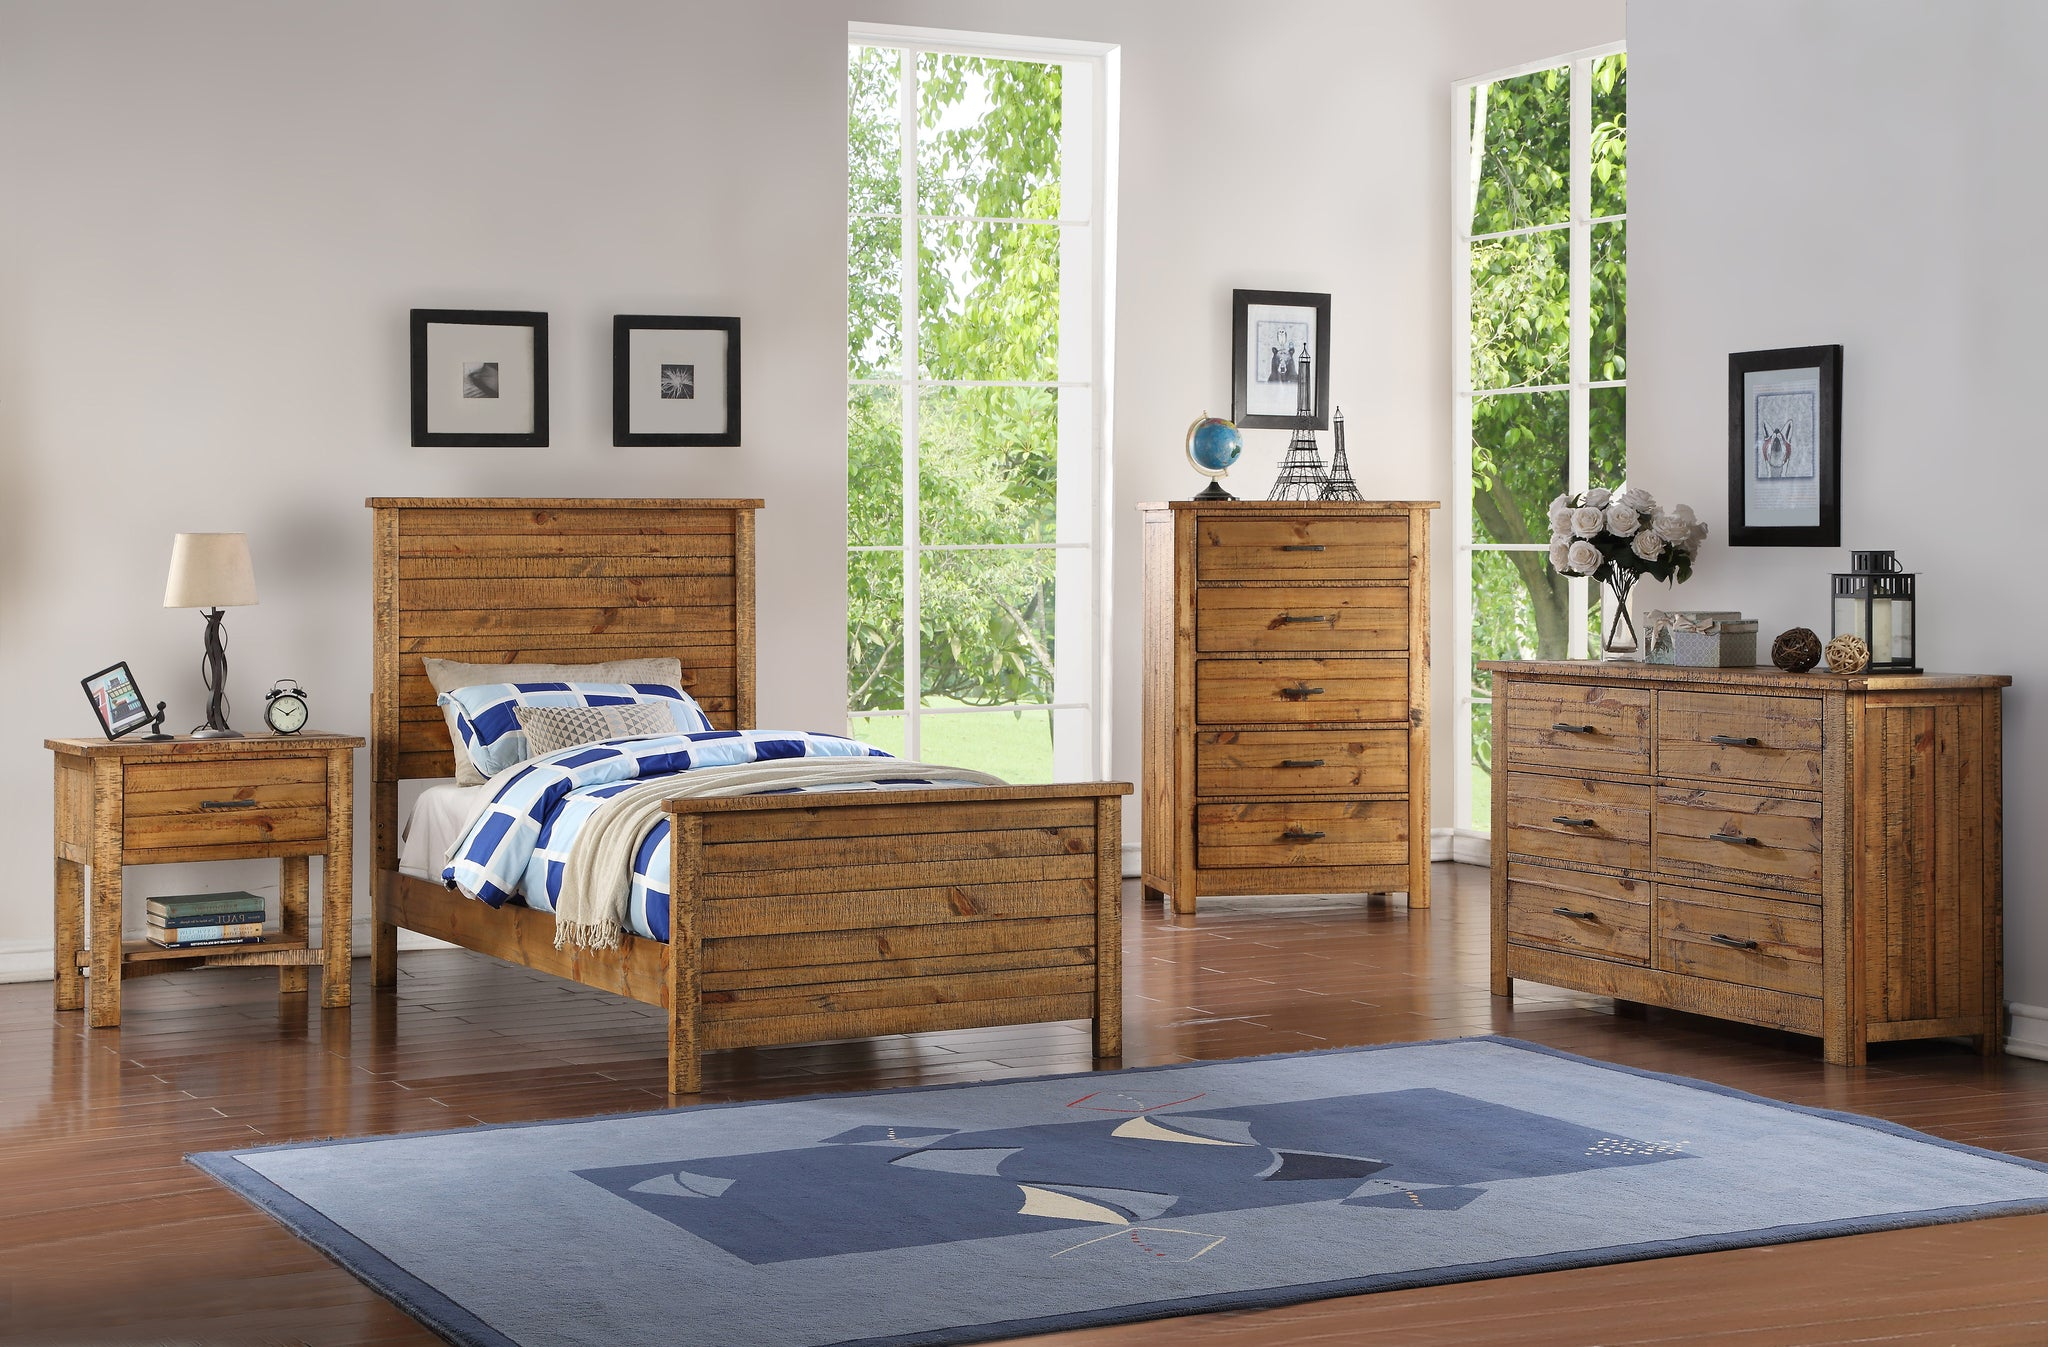 madison twin or full natural wood contemporary kids bedroom set (panel - pilaster designs